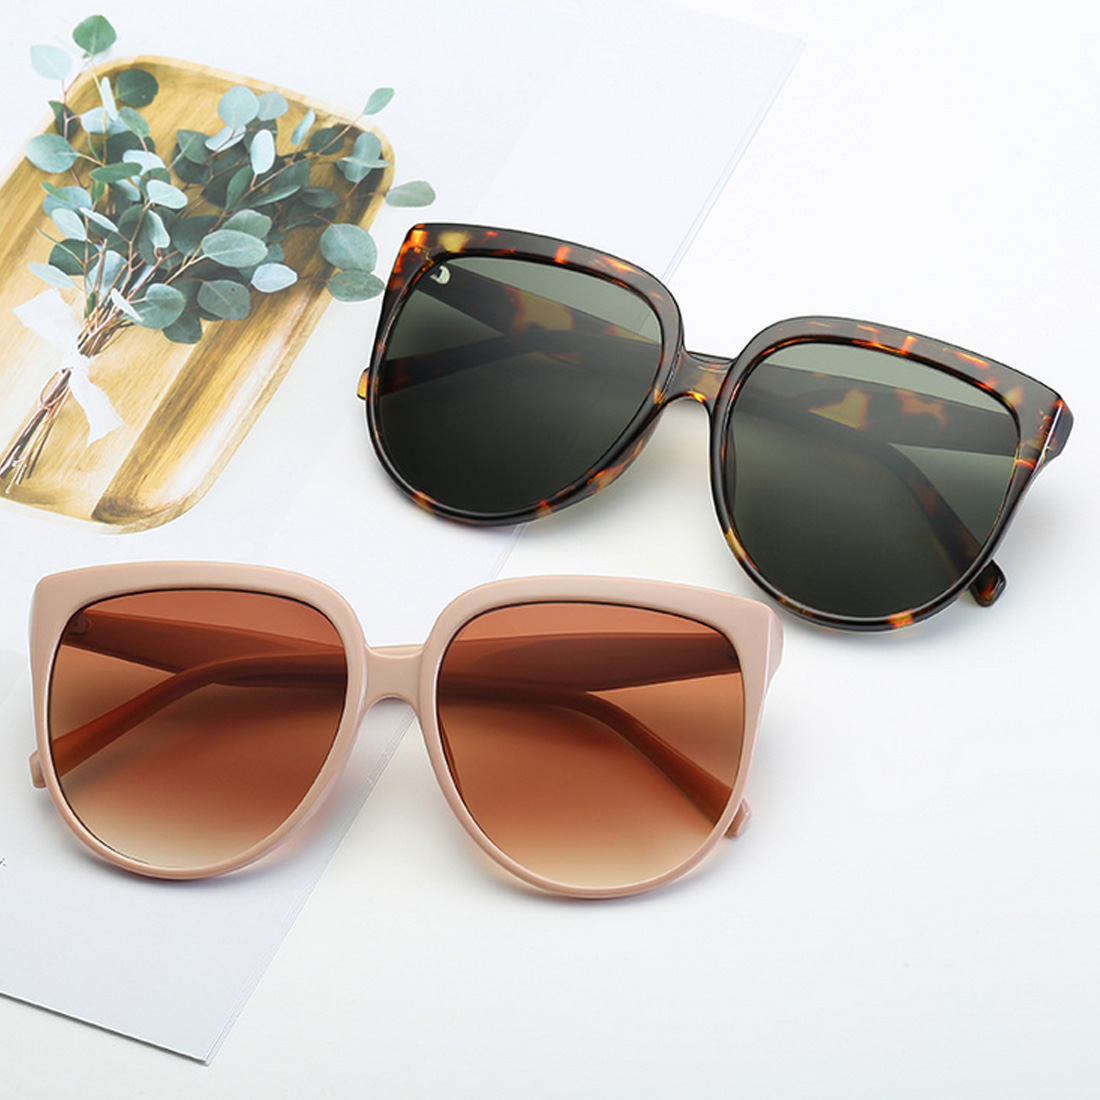 Vintage  Women Cat eye Sunglasses Gradient Glasses Retro Sun glasses Female Eyewear UV400